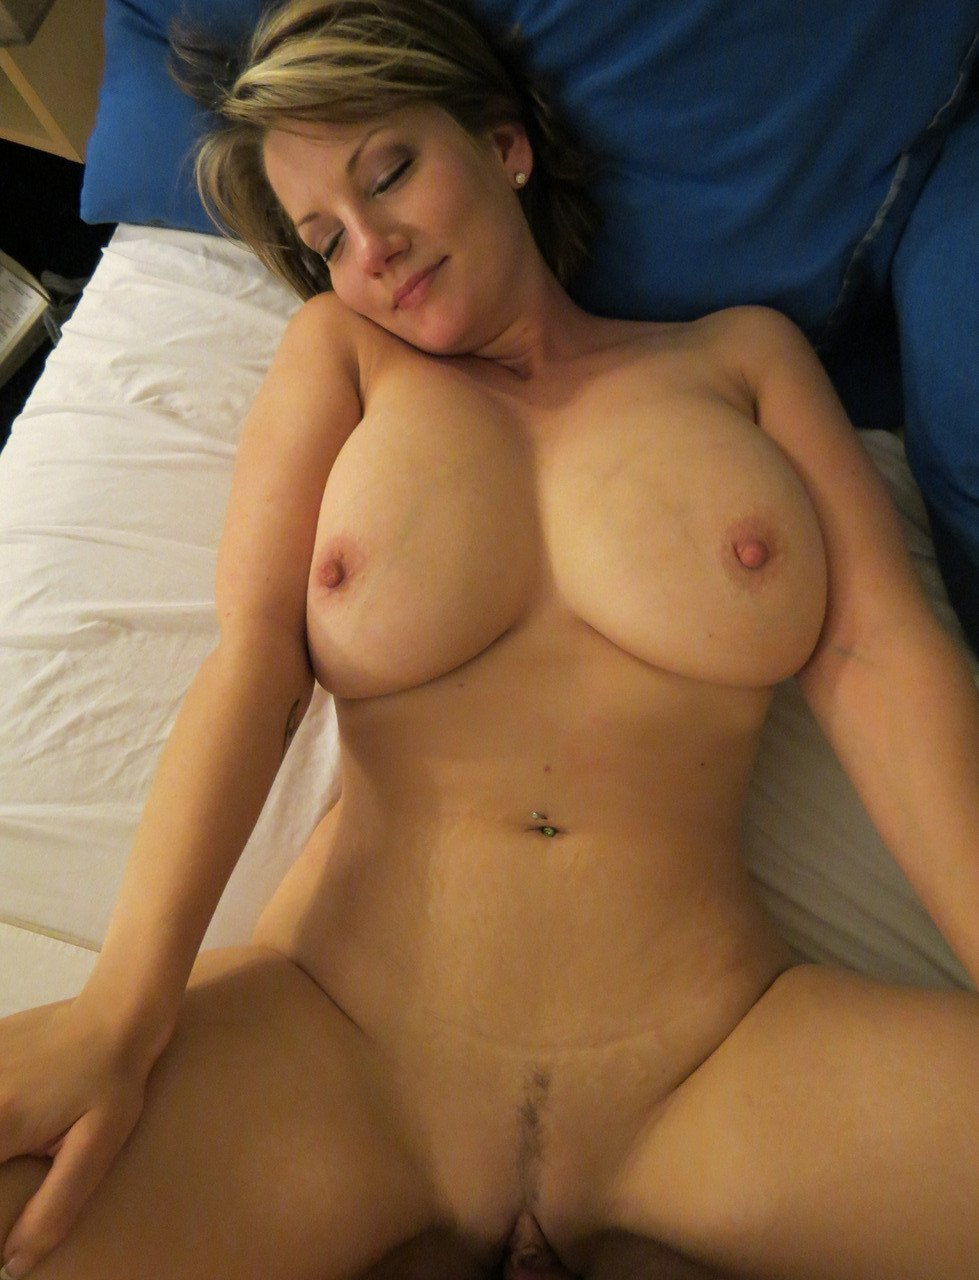 Mature granny gilf tumblr